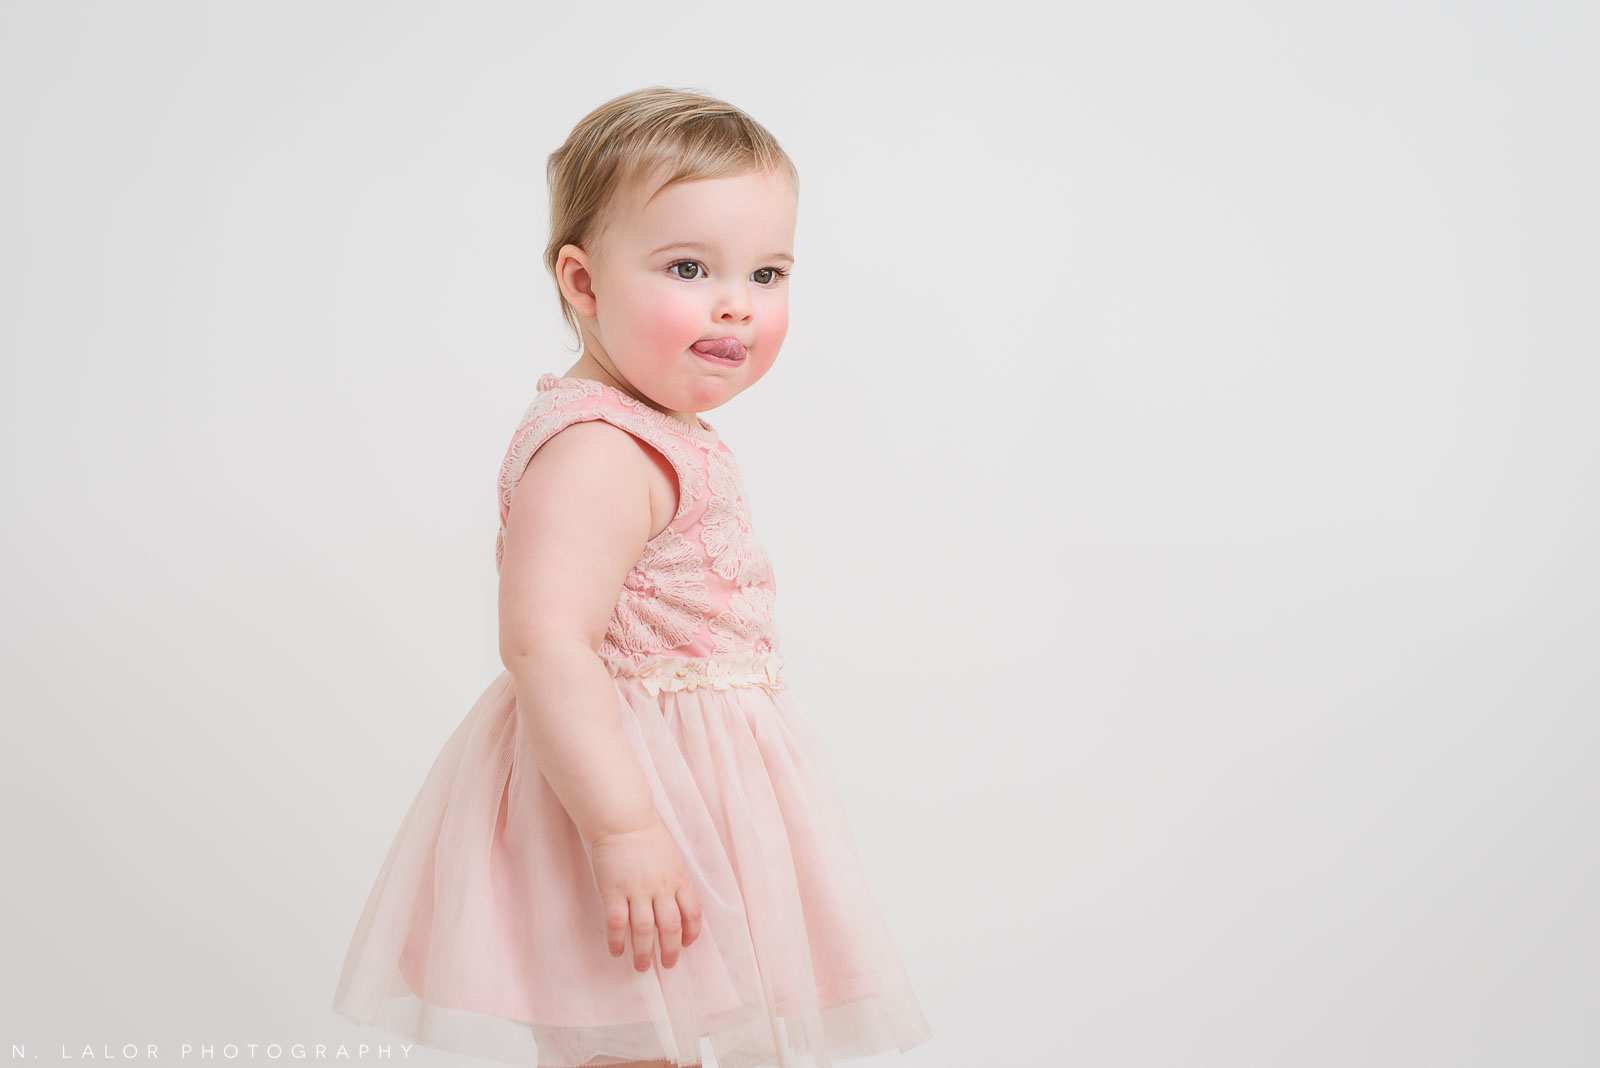 Toddler girl. Portrait by N. Lalor Photography. Greenwich, CT